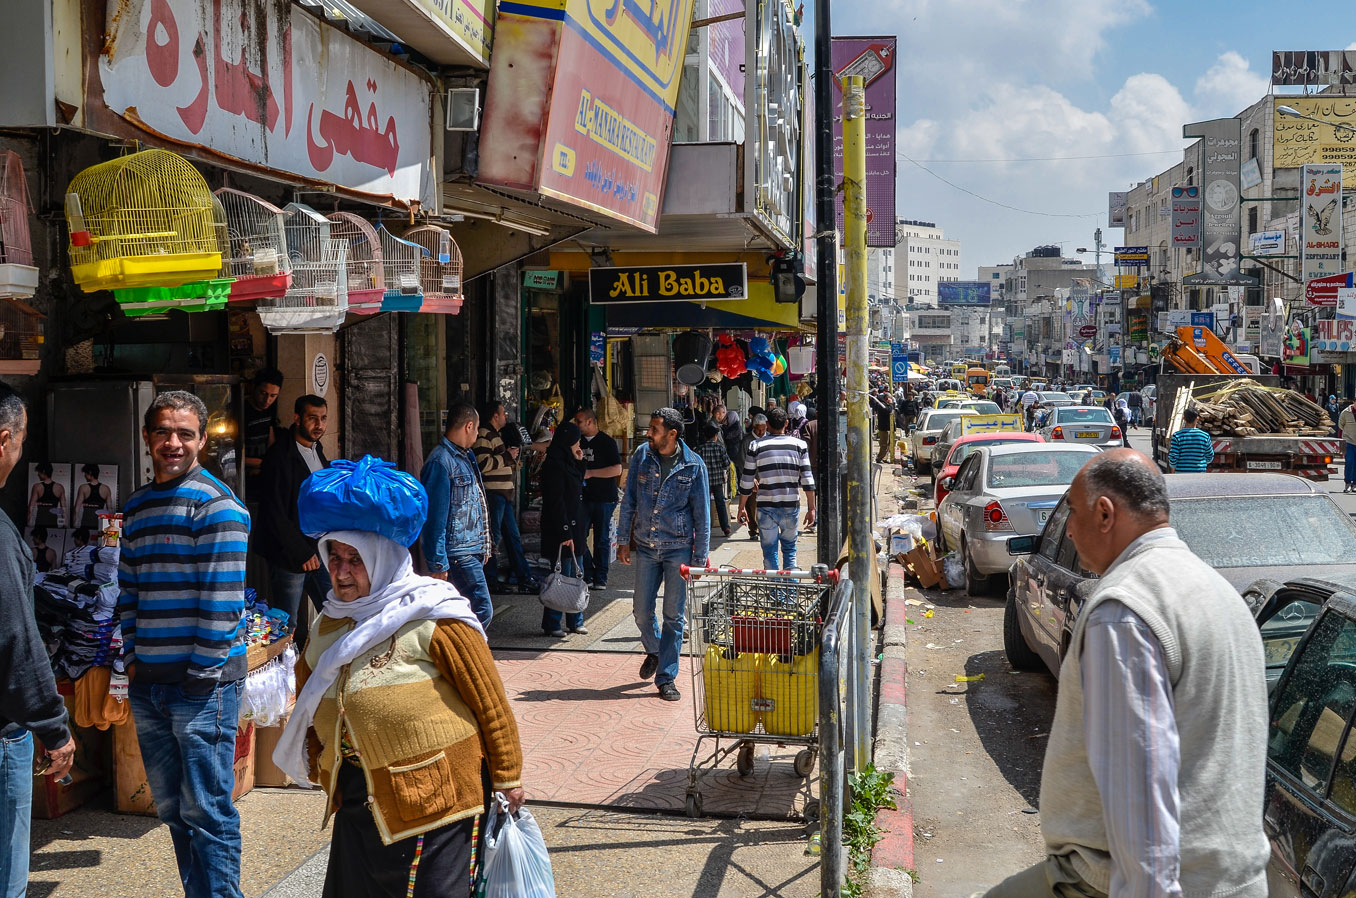 A colourful street teeming with people and cars in Ramallah, Palestine